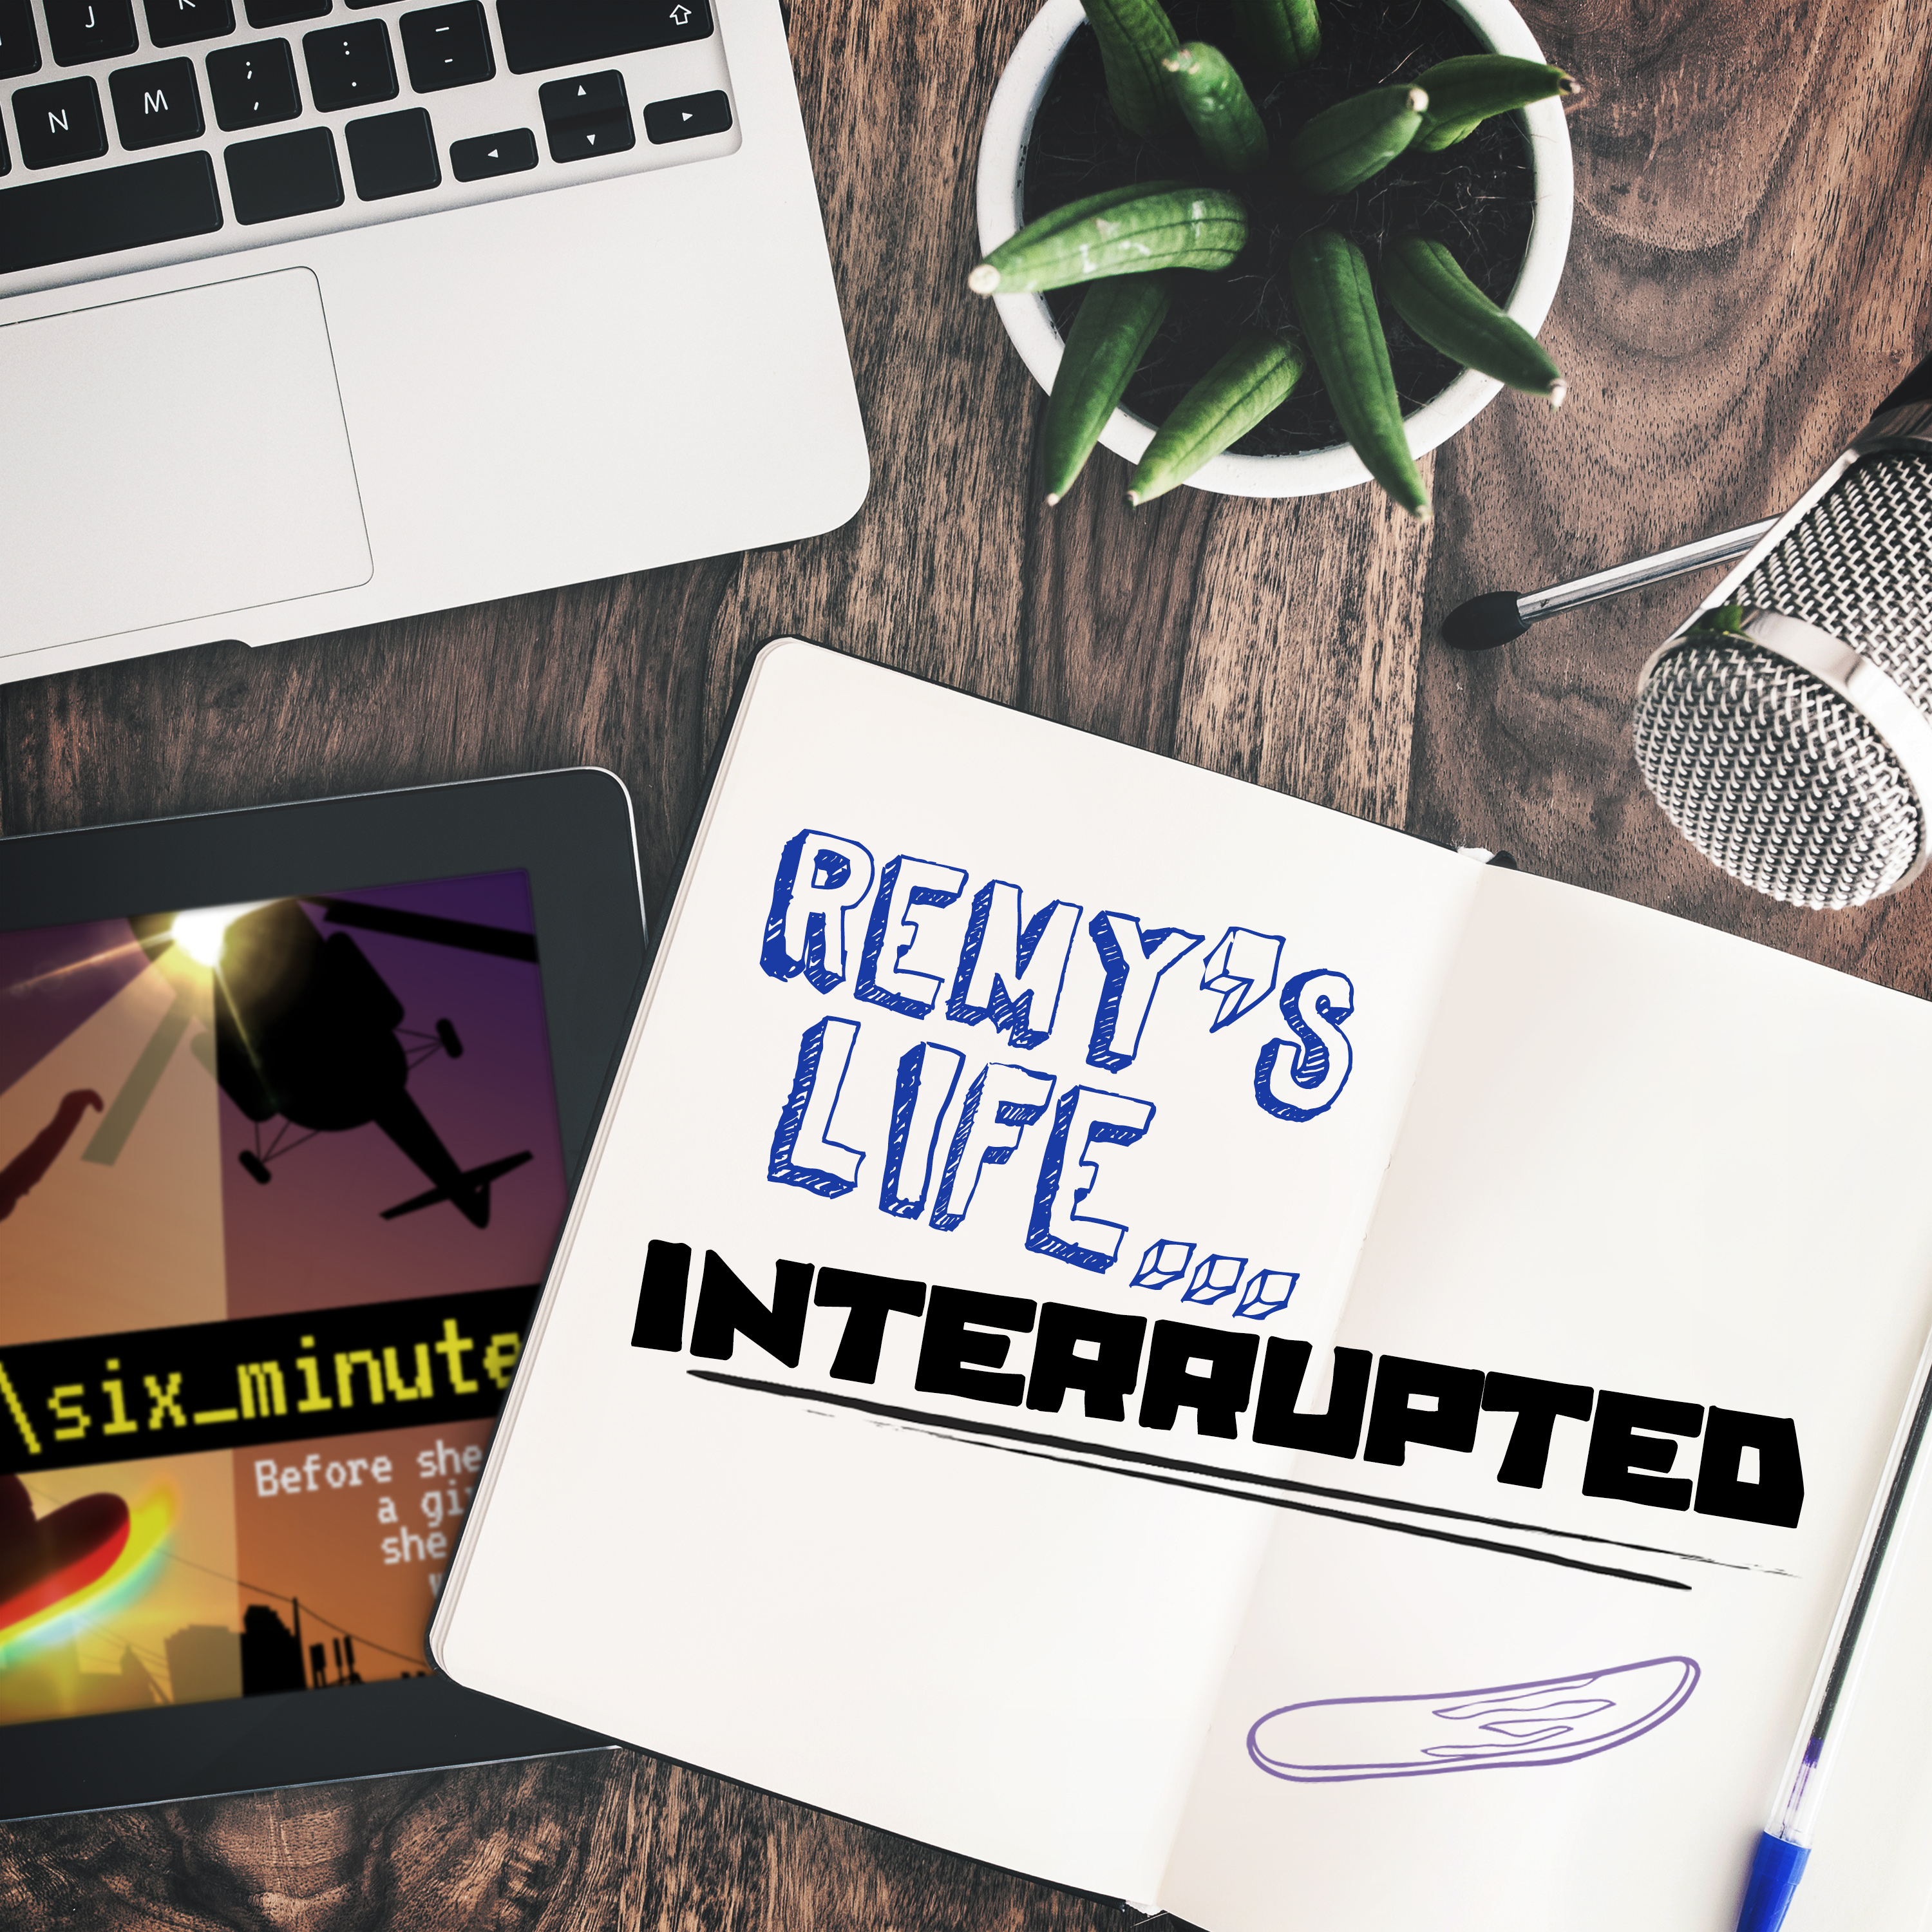 Remy's Life Interrupted: EP68